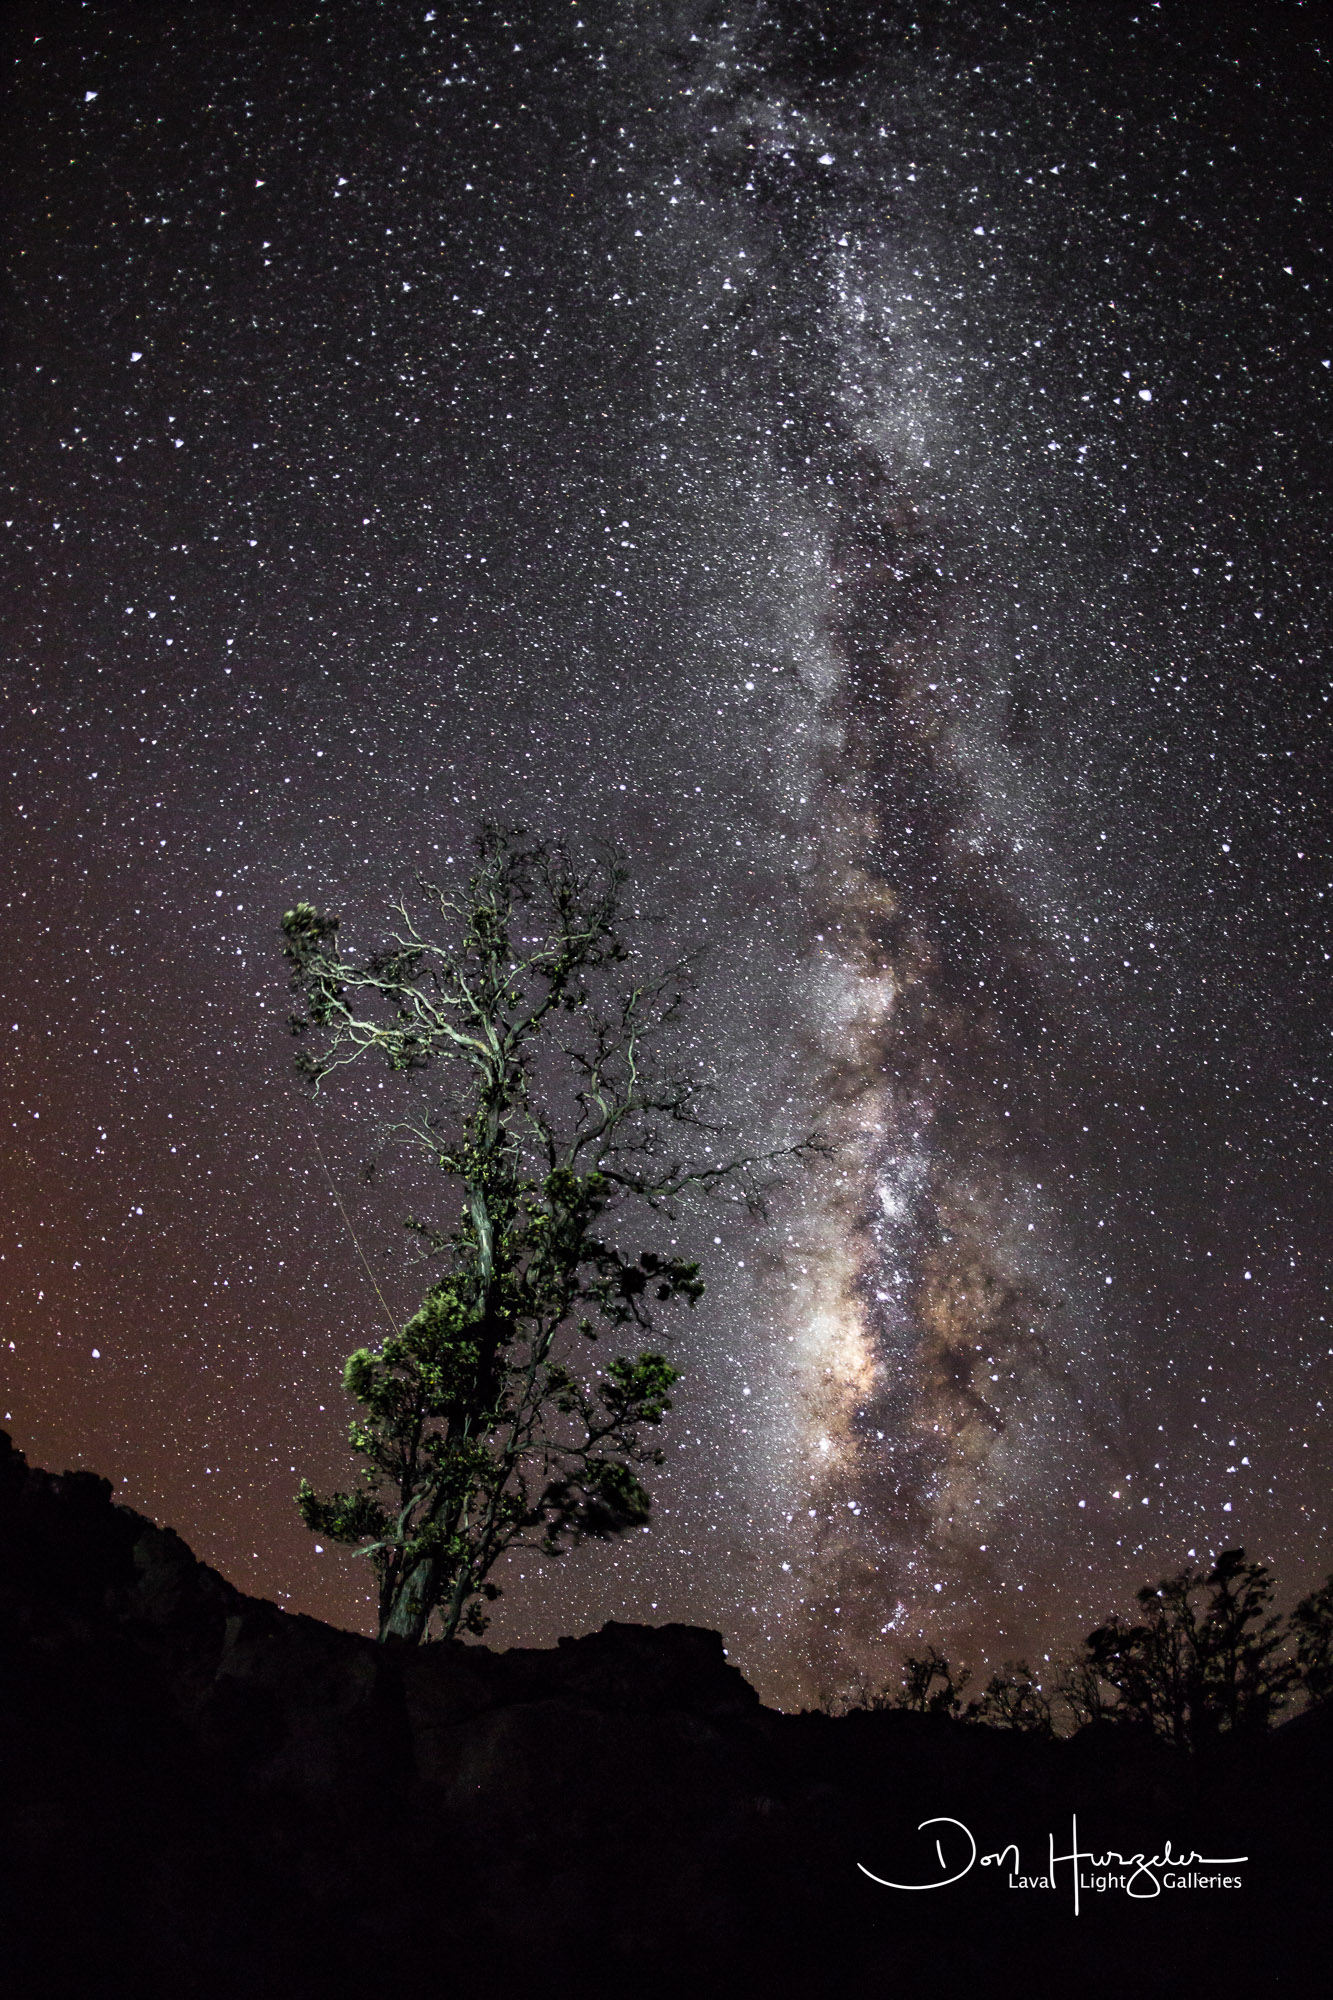 Taken at about 5000 feet up at the darkest spot on the island.